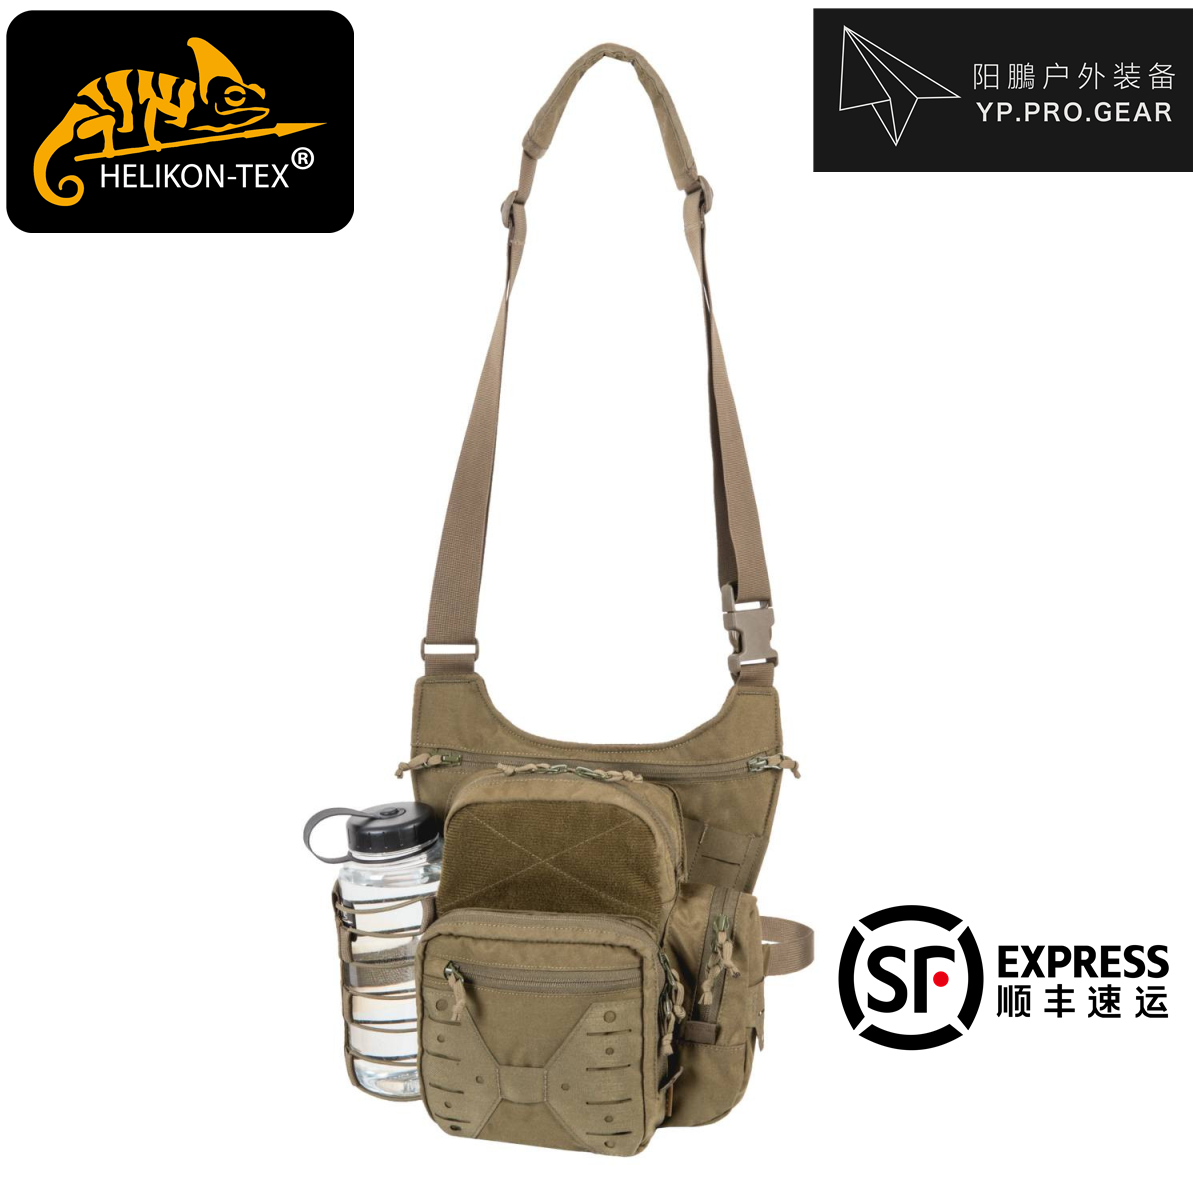 Helikon EDC Shoulder Bag Tactical Outdoor Portable Mobile Saddle Bag Shoulder Bag Slant Back Commuter Bag